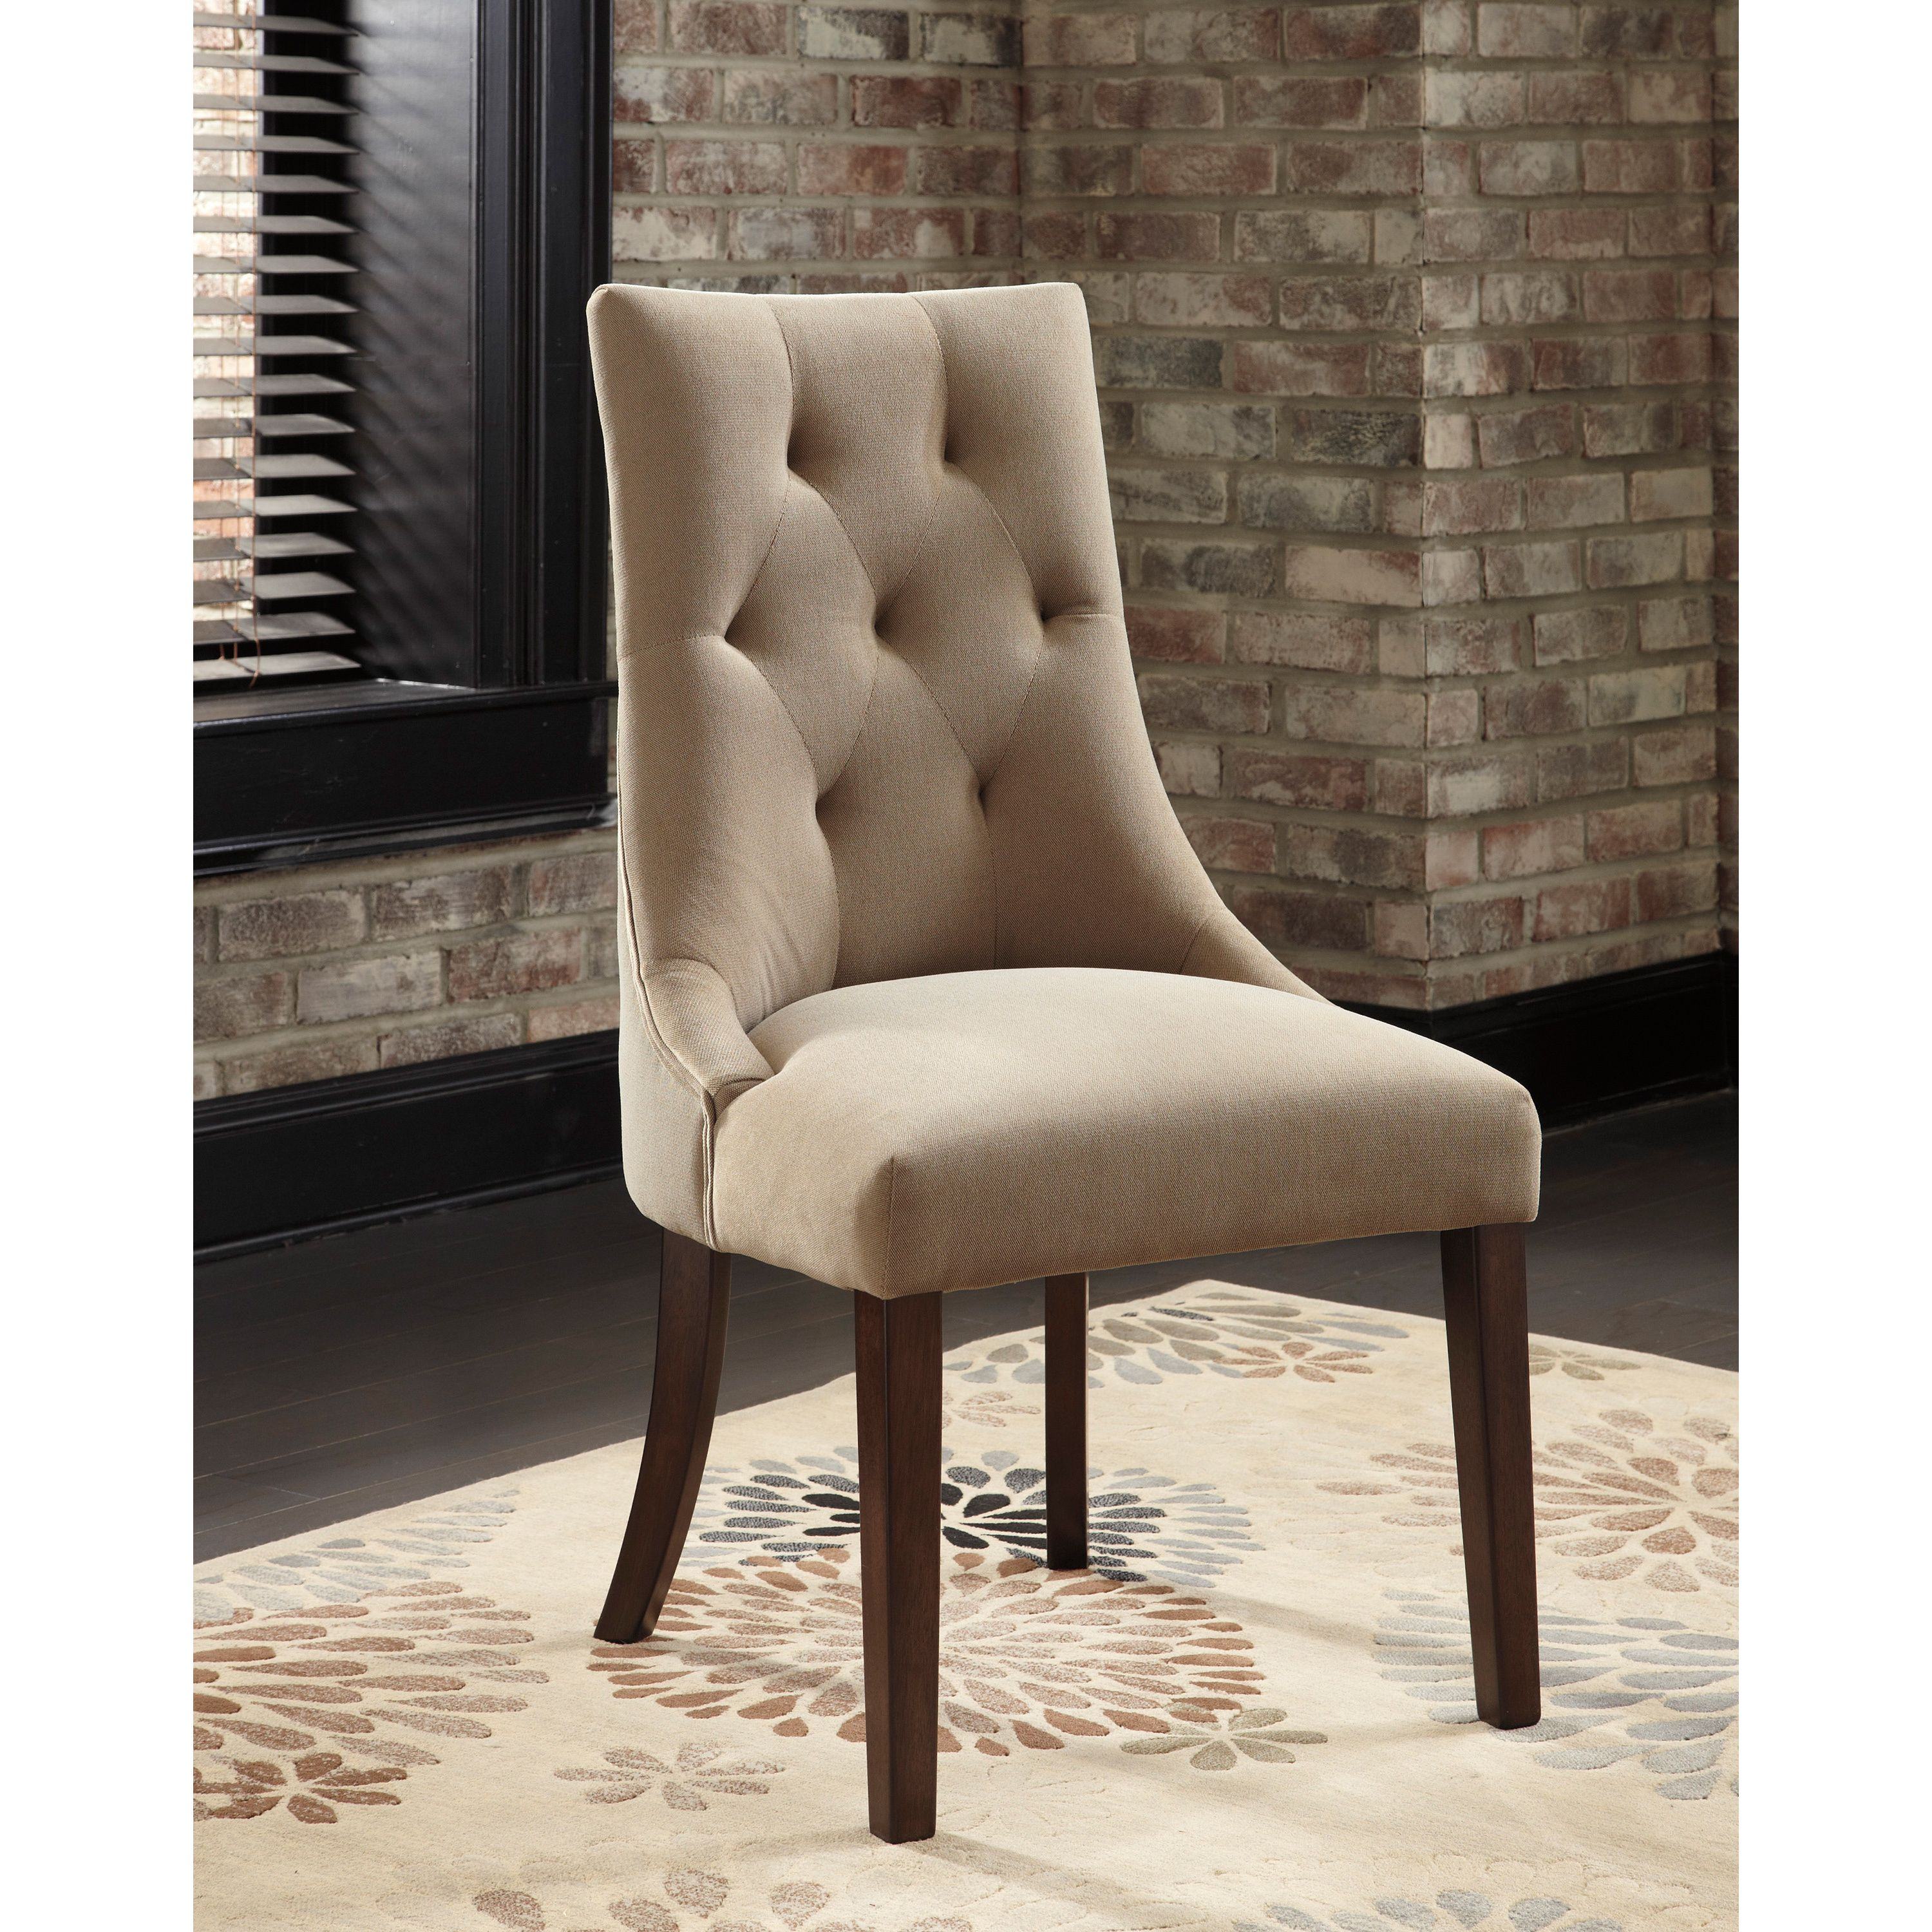 the mestler dining chairs showcase a contemporary frame with